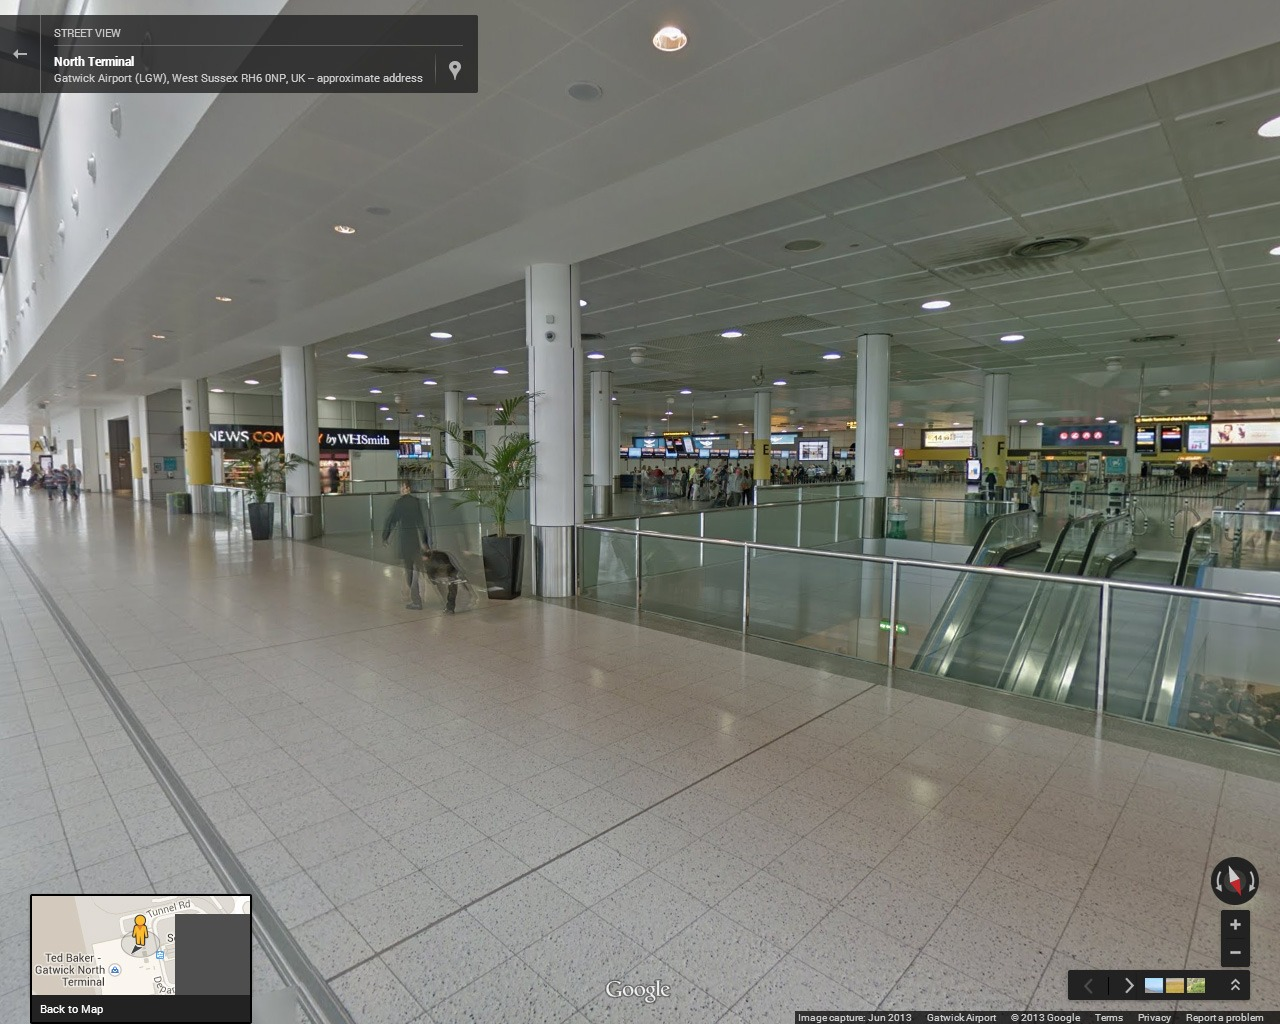 Google Street View of London's Gatwick Airport.